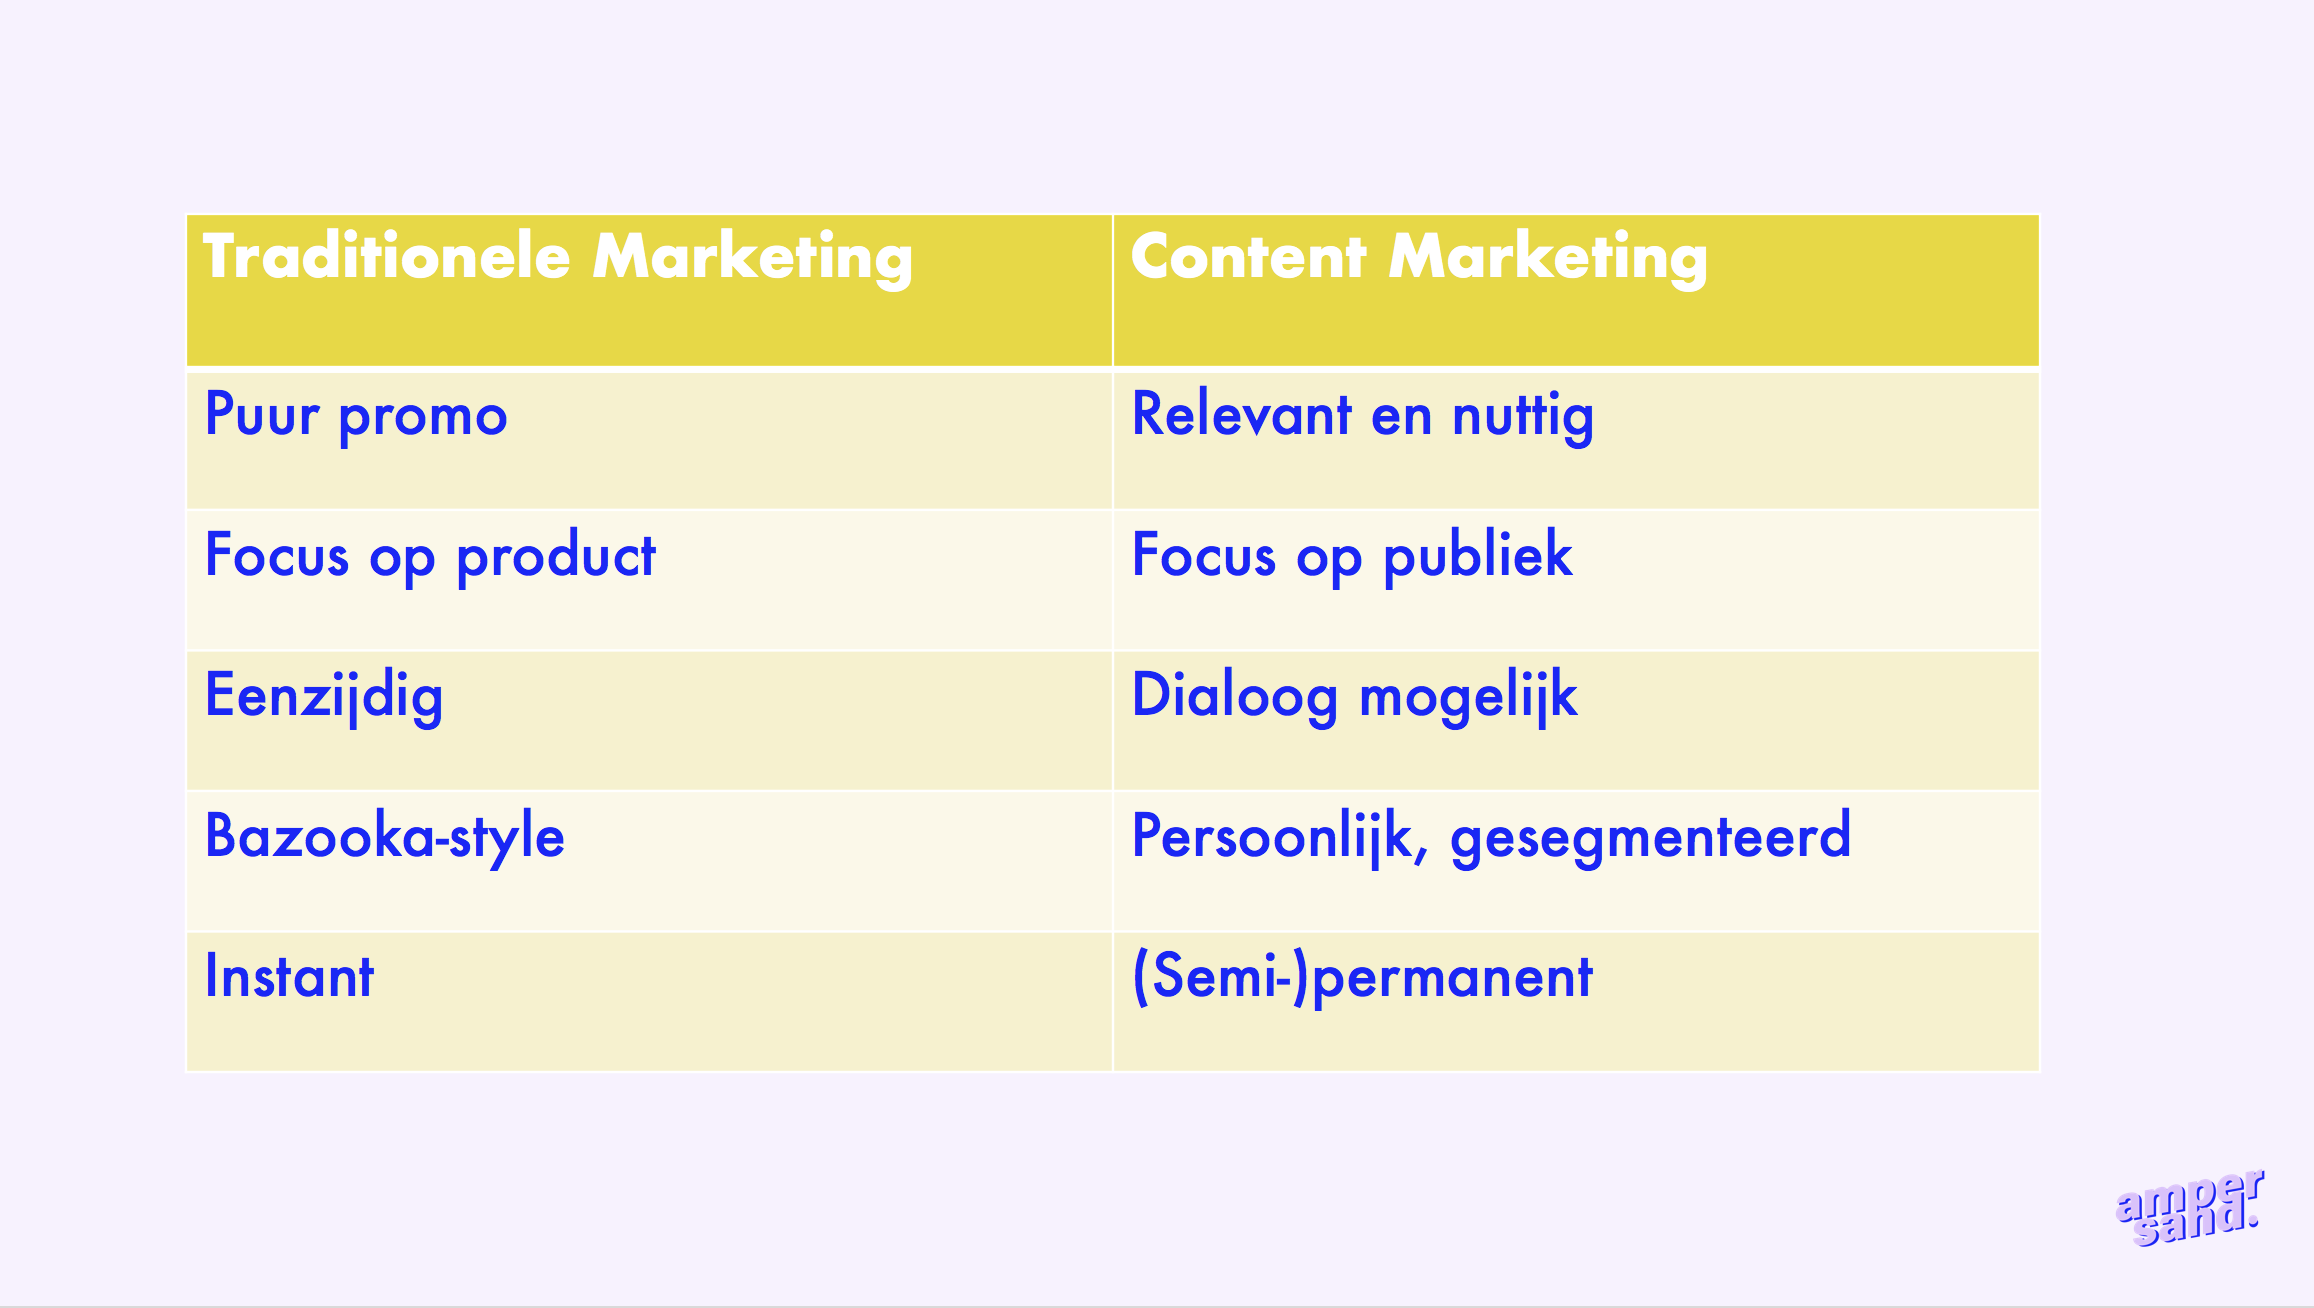 Traditionele marketing vs. content marketing: zoek de 5 verschillen.